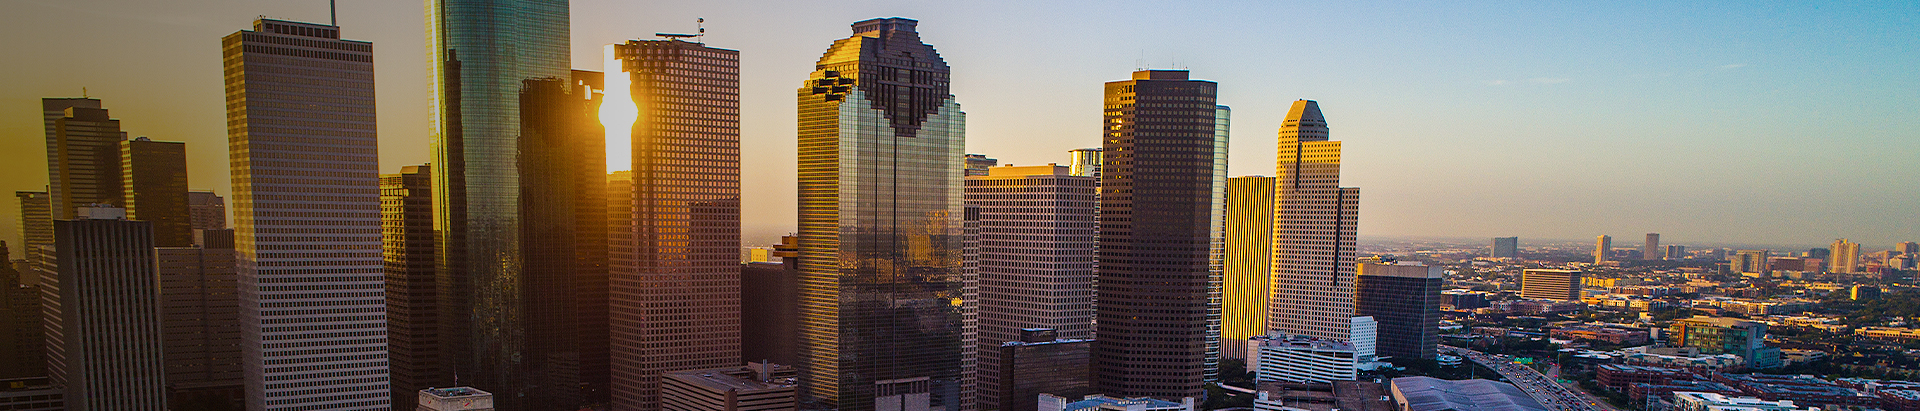 the houston skyline at dusk